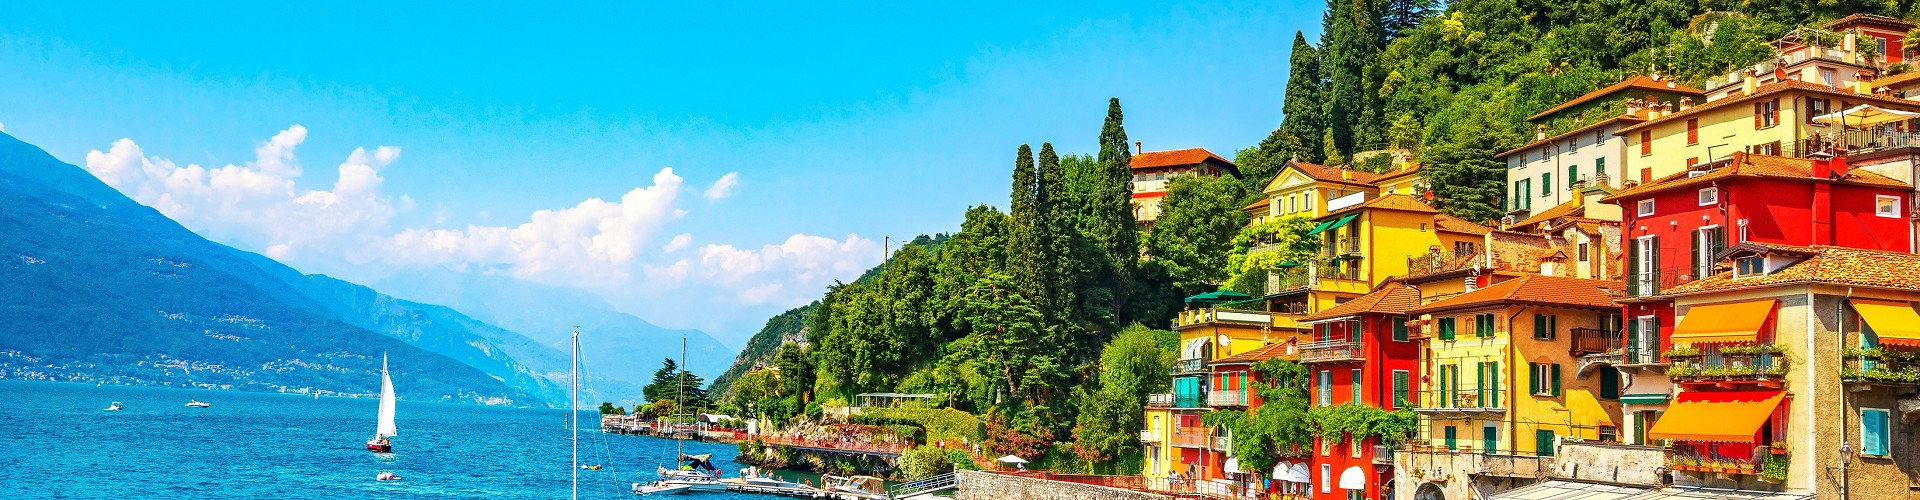 How to Reach Villa Balbianello | How do i get from Lenno to Bellagio